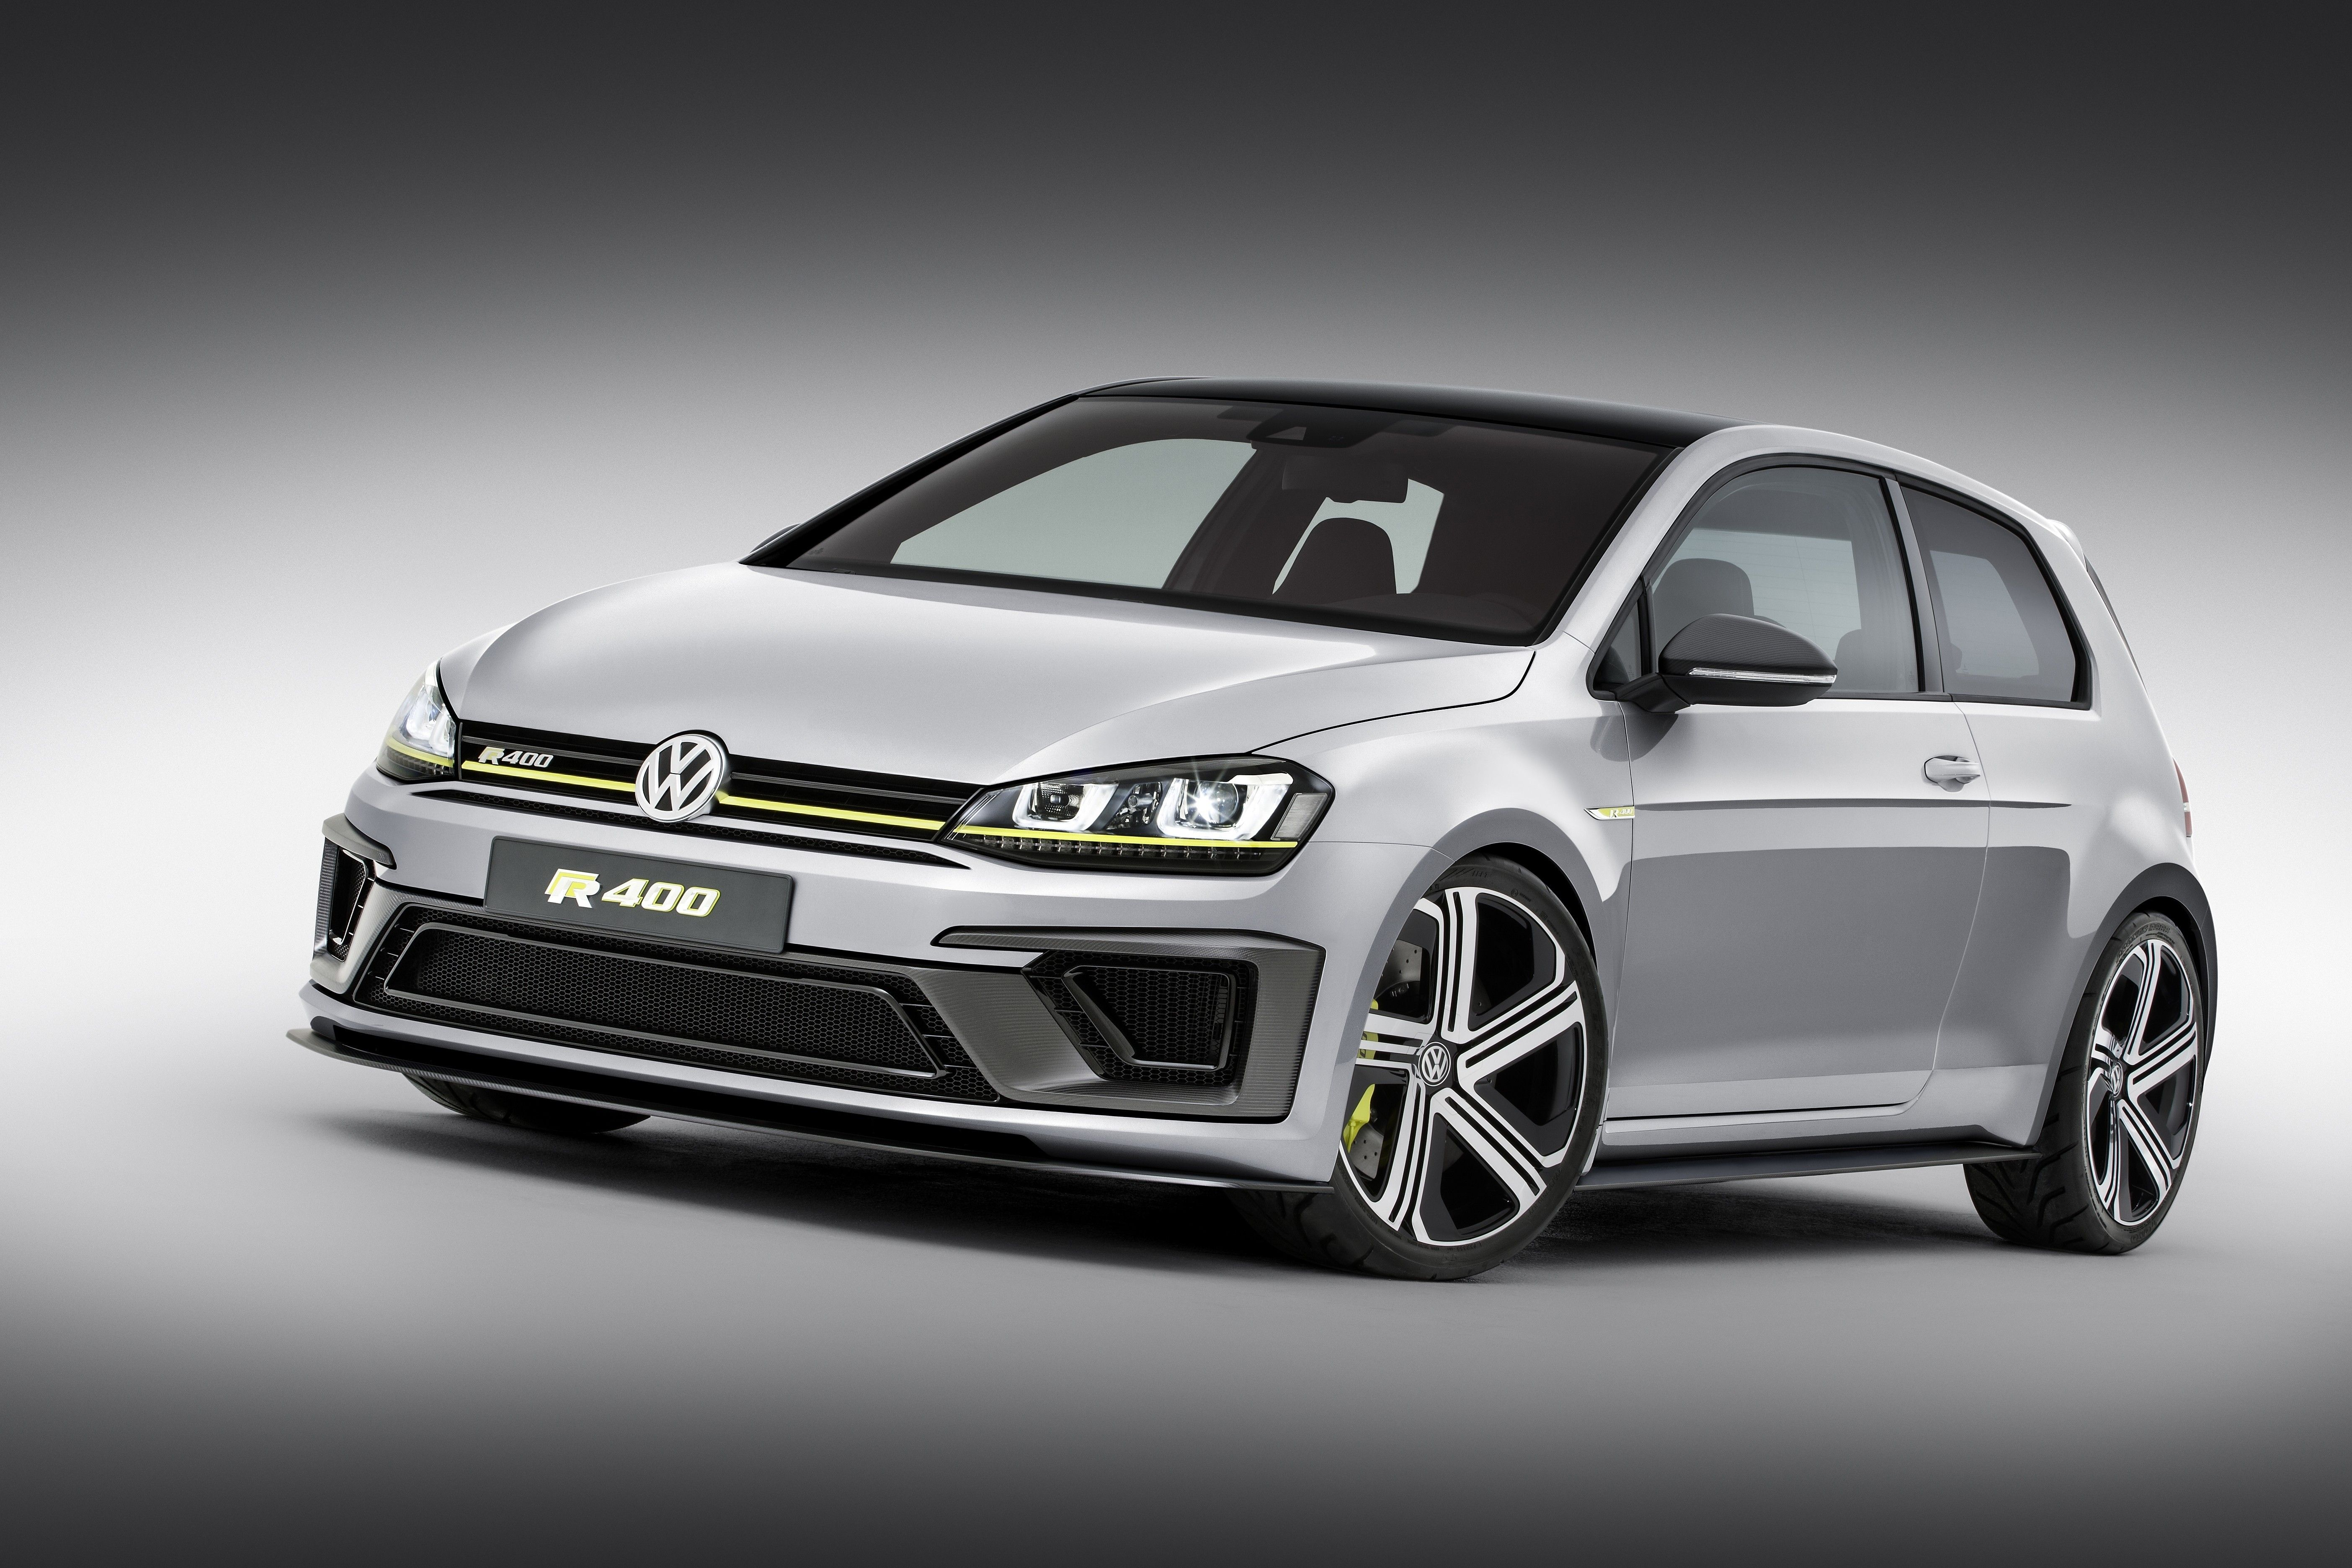 2019 Volkswagen Golf R 400 Review Specs And Release Date Redesign Price And Review Concept Redesign And R Volkswagen Golf R Volkswagen Volkswagen Polo Gti